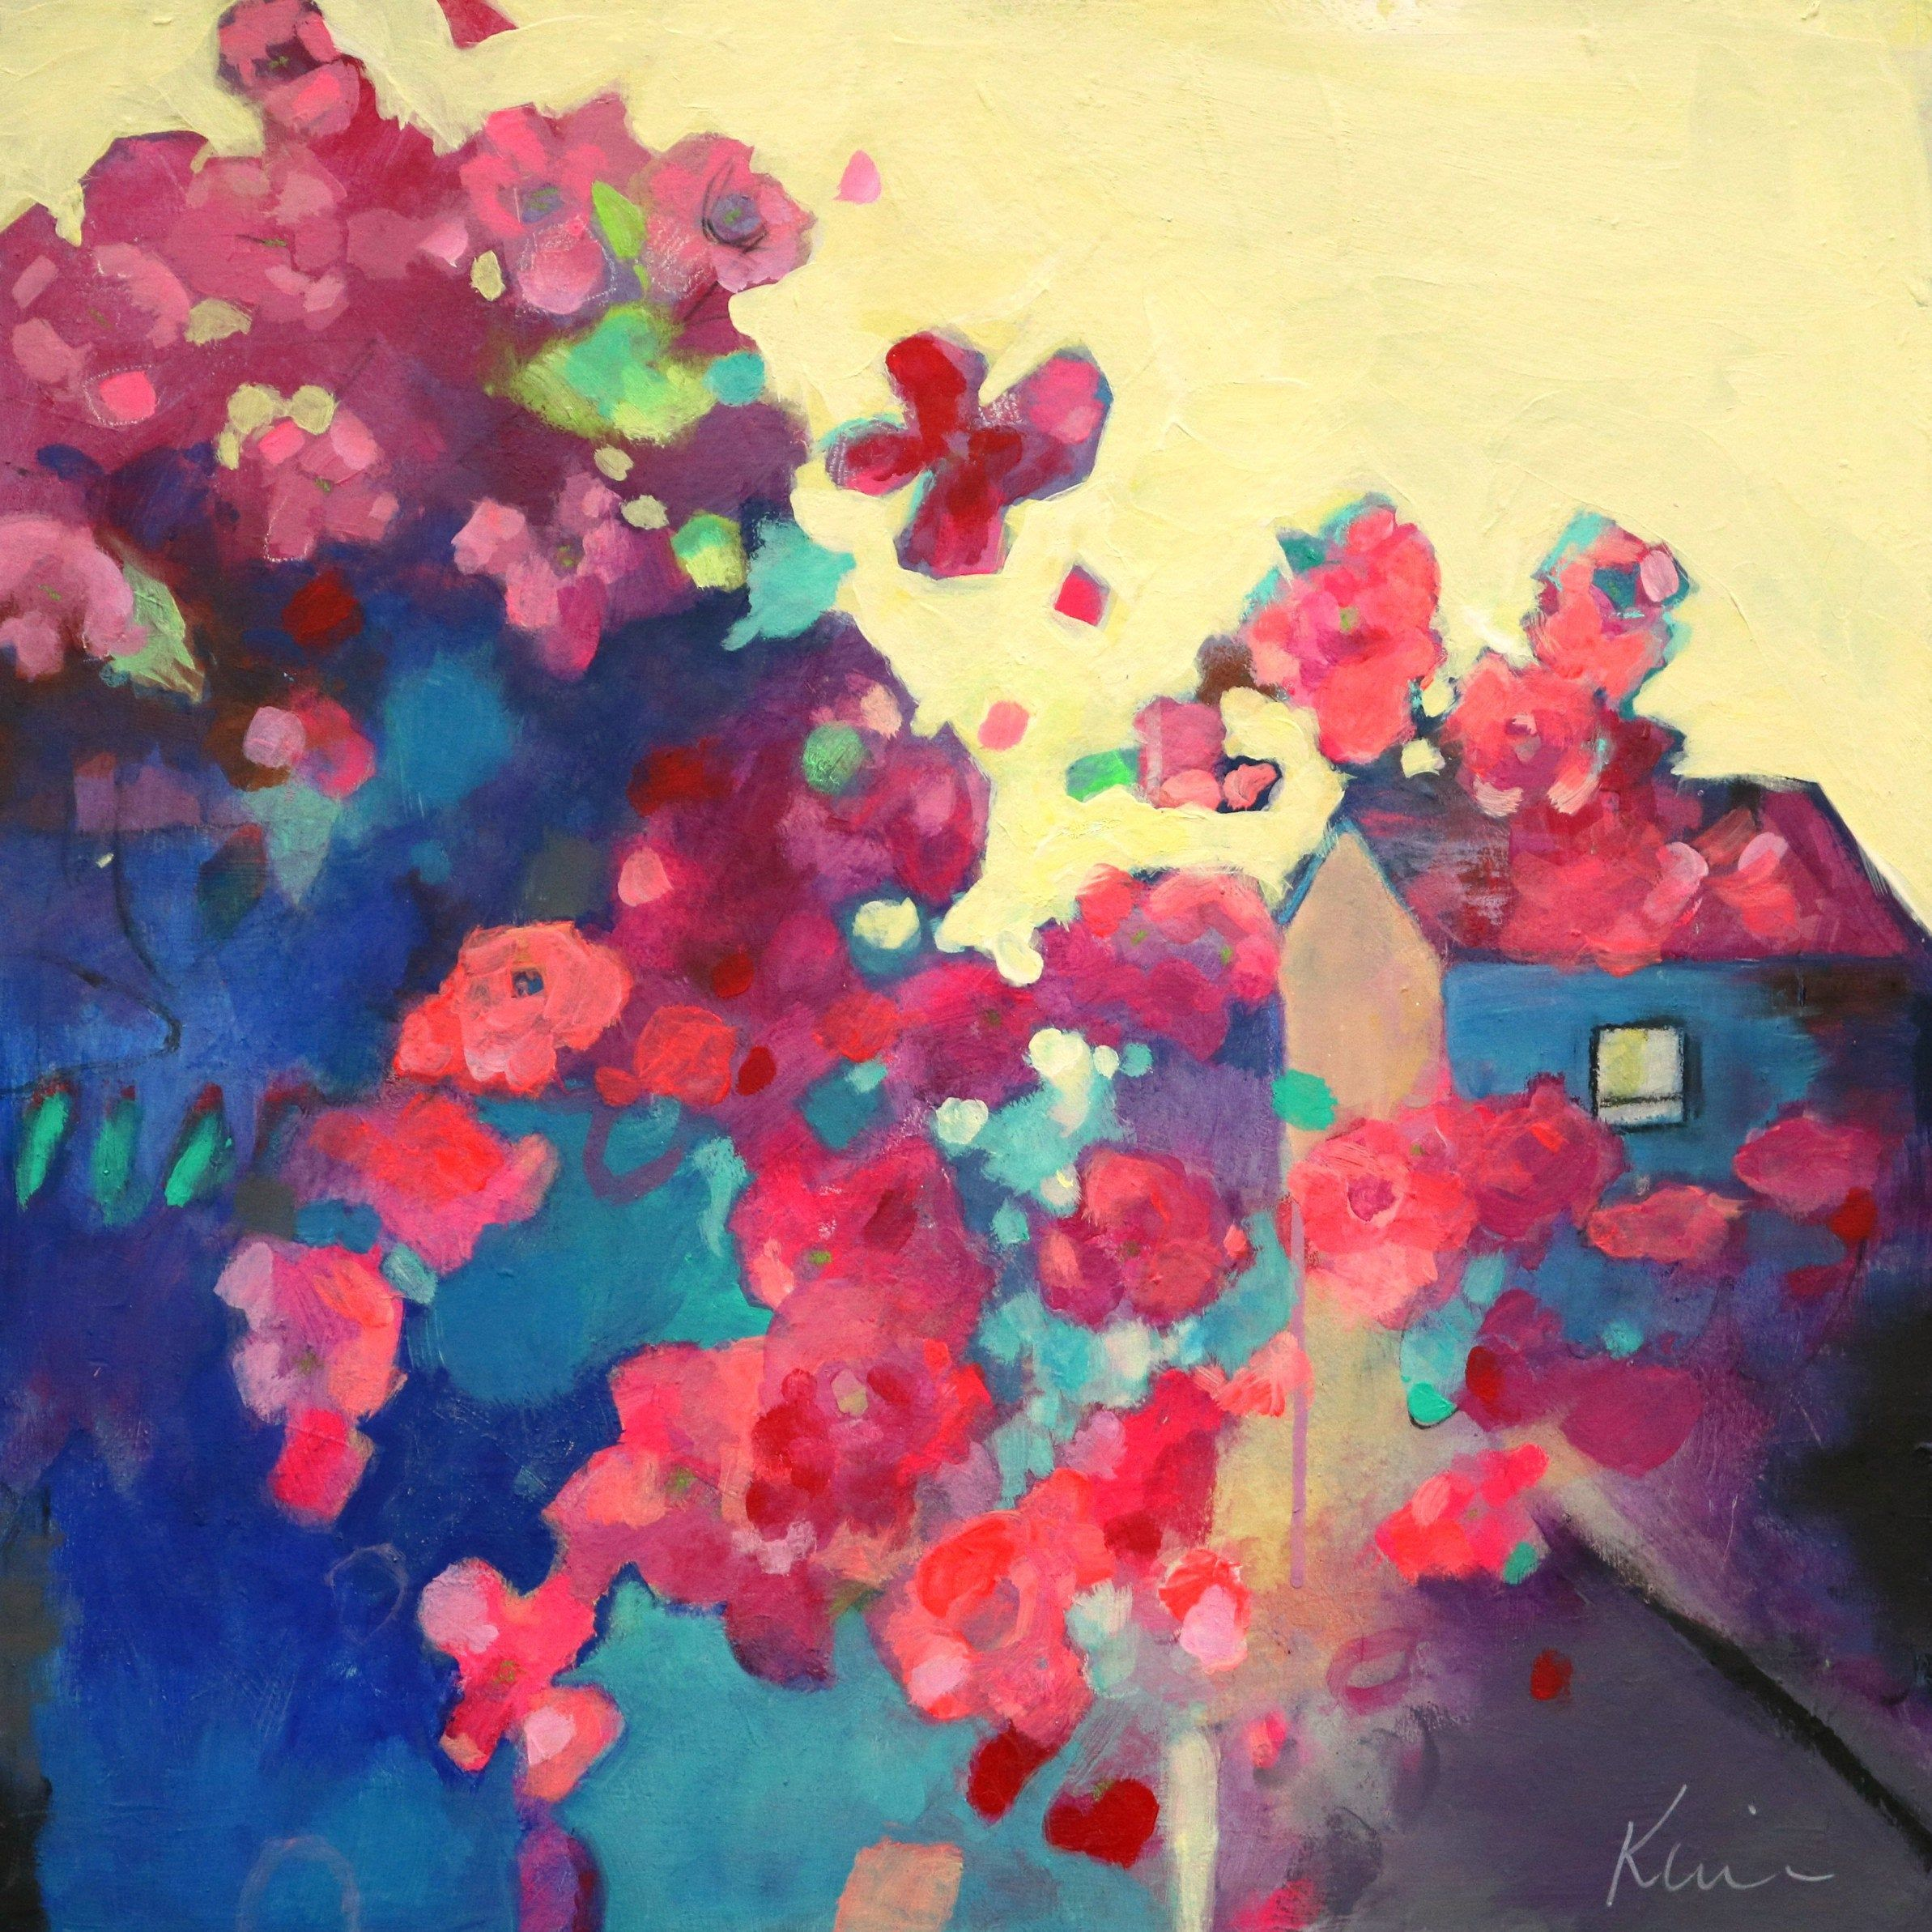 Abstract Floral Landscape Painting Colorful Farmhouse Home Behind The Cherry Blossoms 20x20 Landscape Paintings Abstract Painting